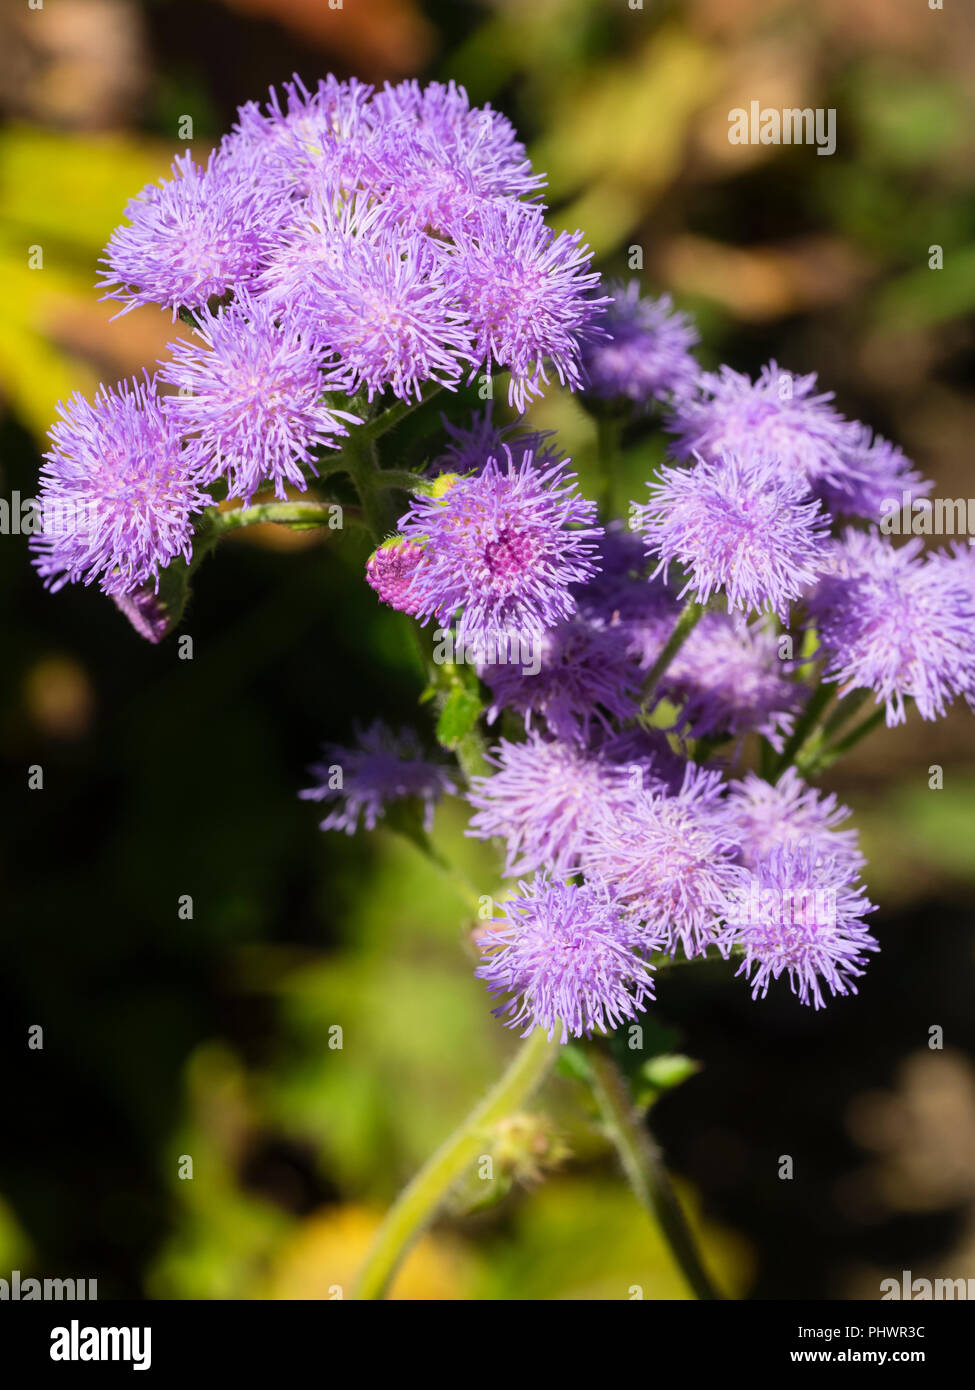 Lavender coloured flowers of the tender annual floss flower, Ageratum houstonianum 'Timeless Mixed' - Stock Image